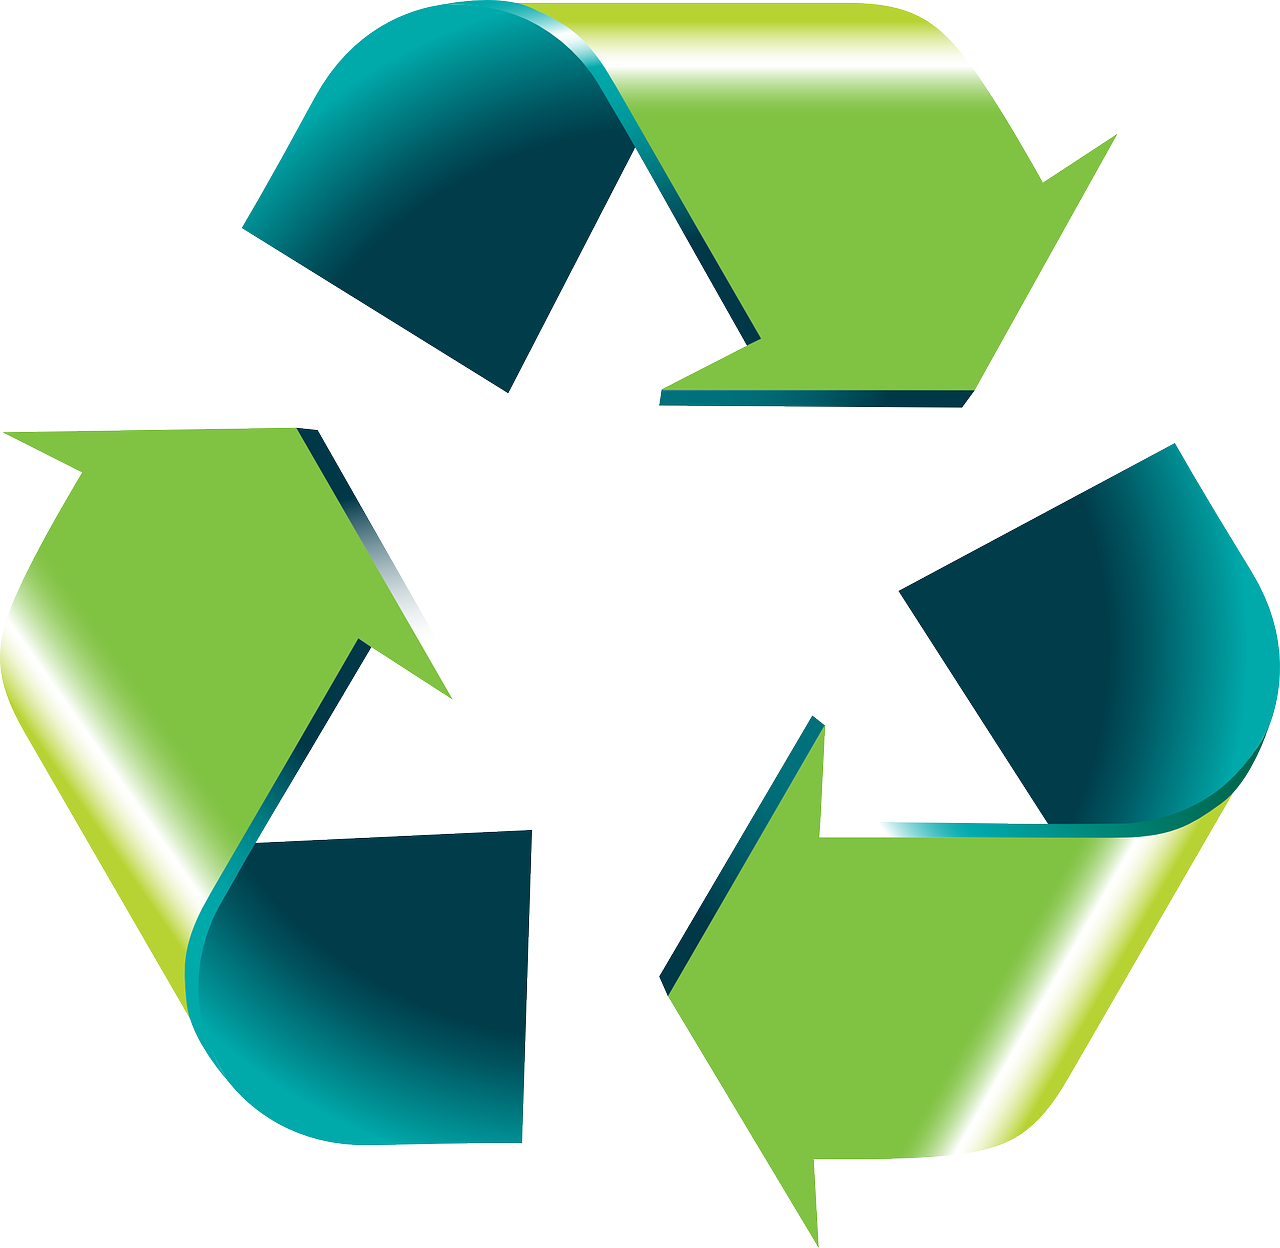 recycling-254312_1280.png